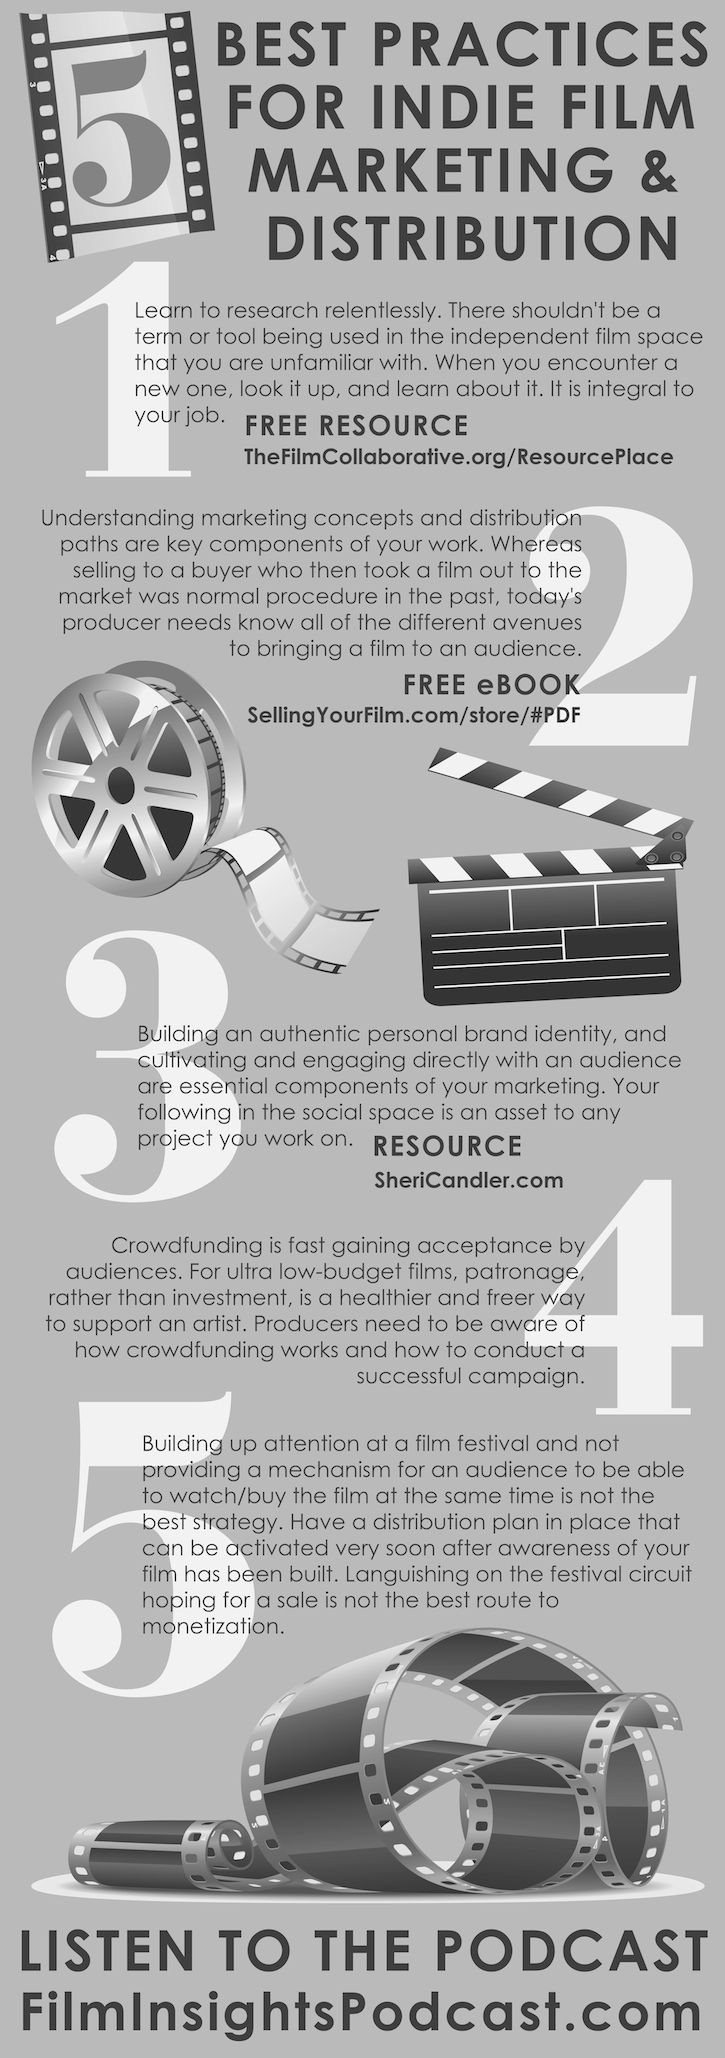 an infographic based on 5 things independent film producers should be doing as part of their jobs.